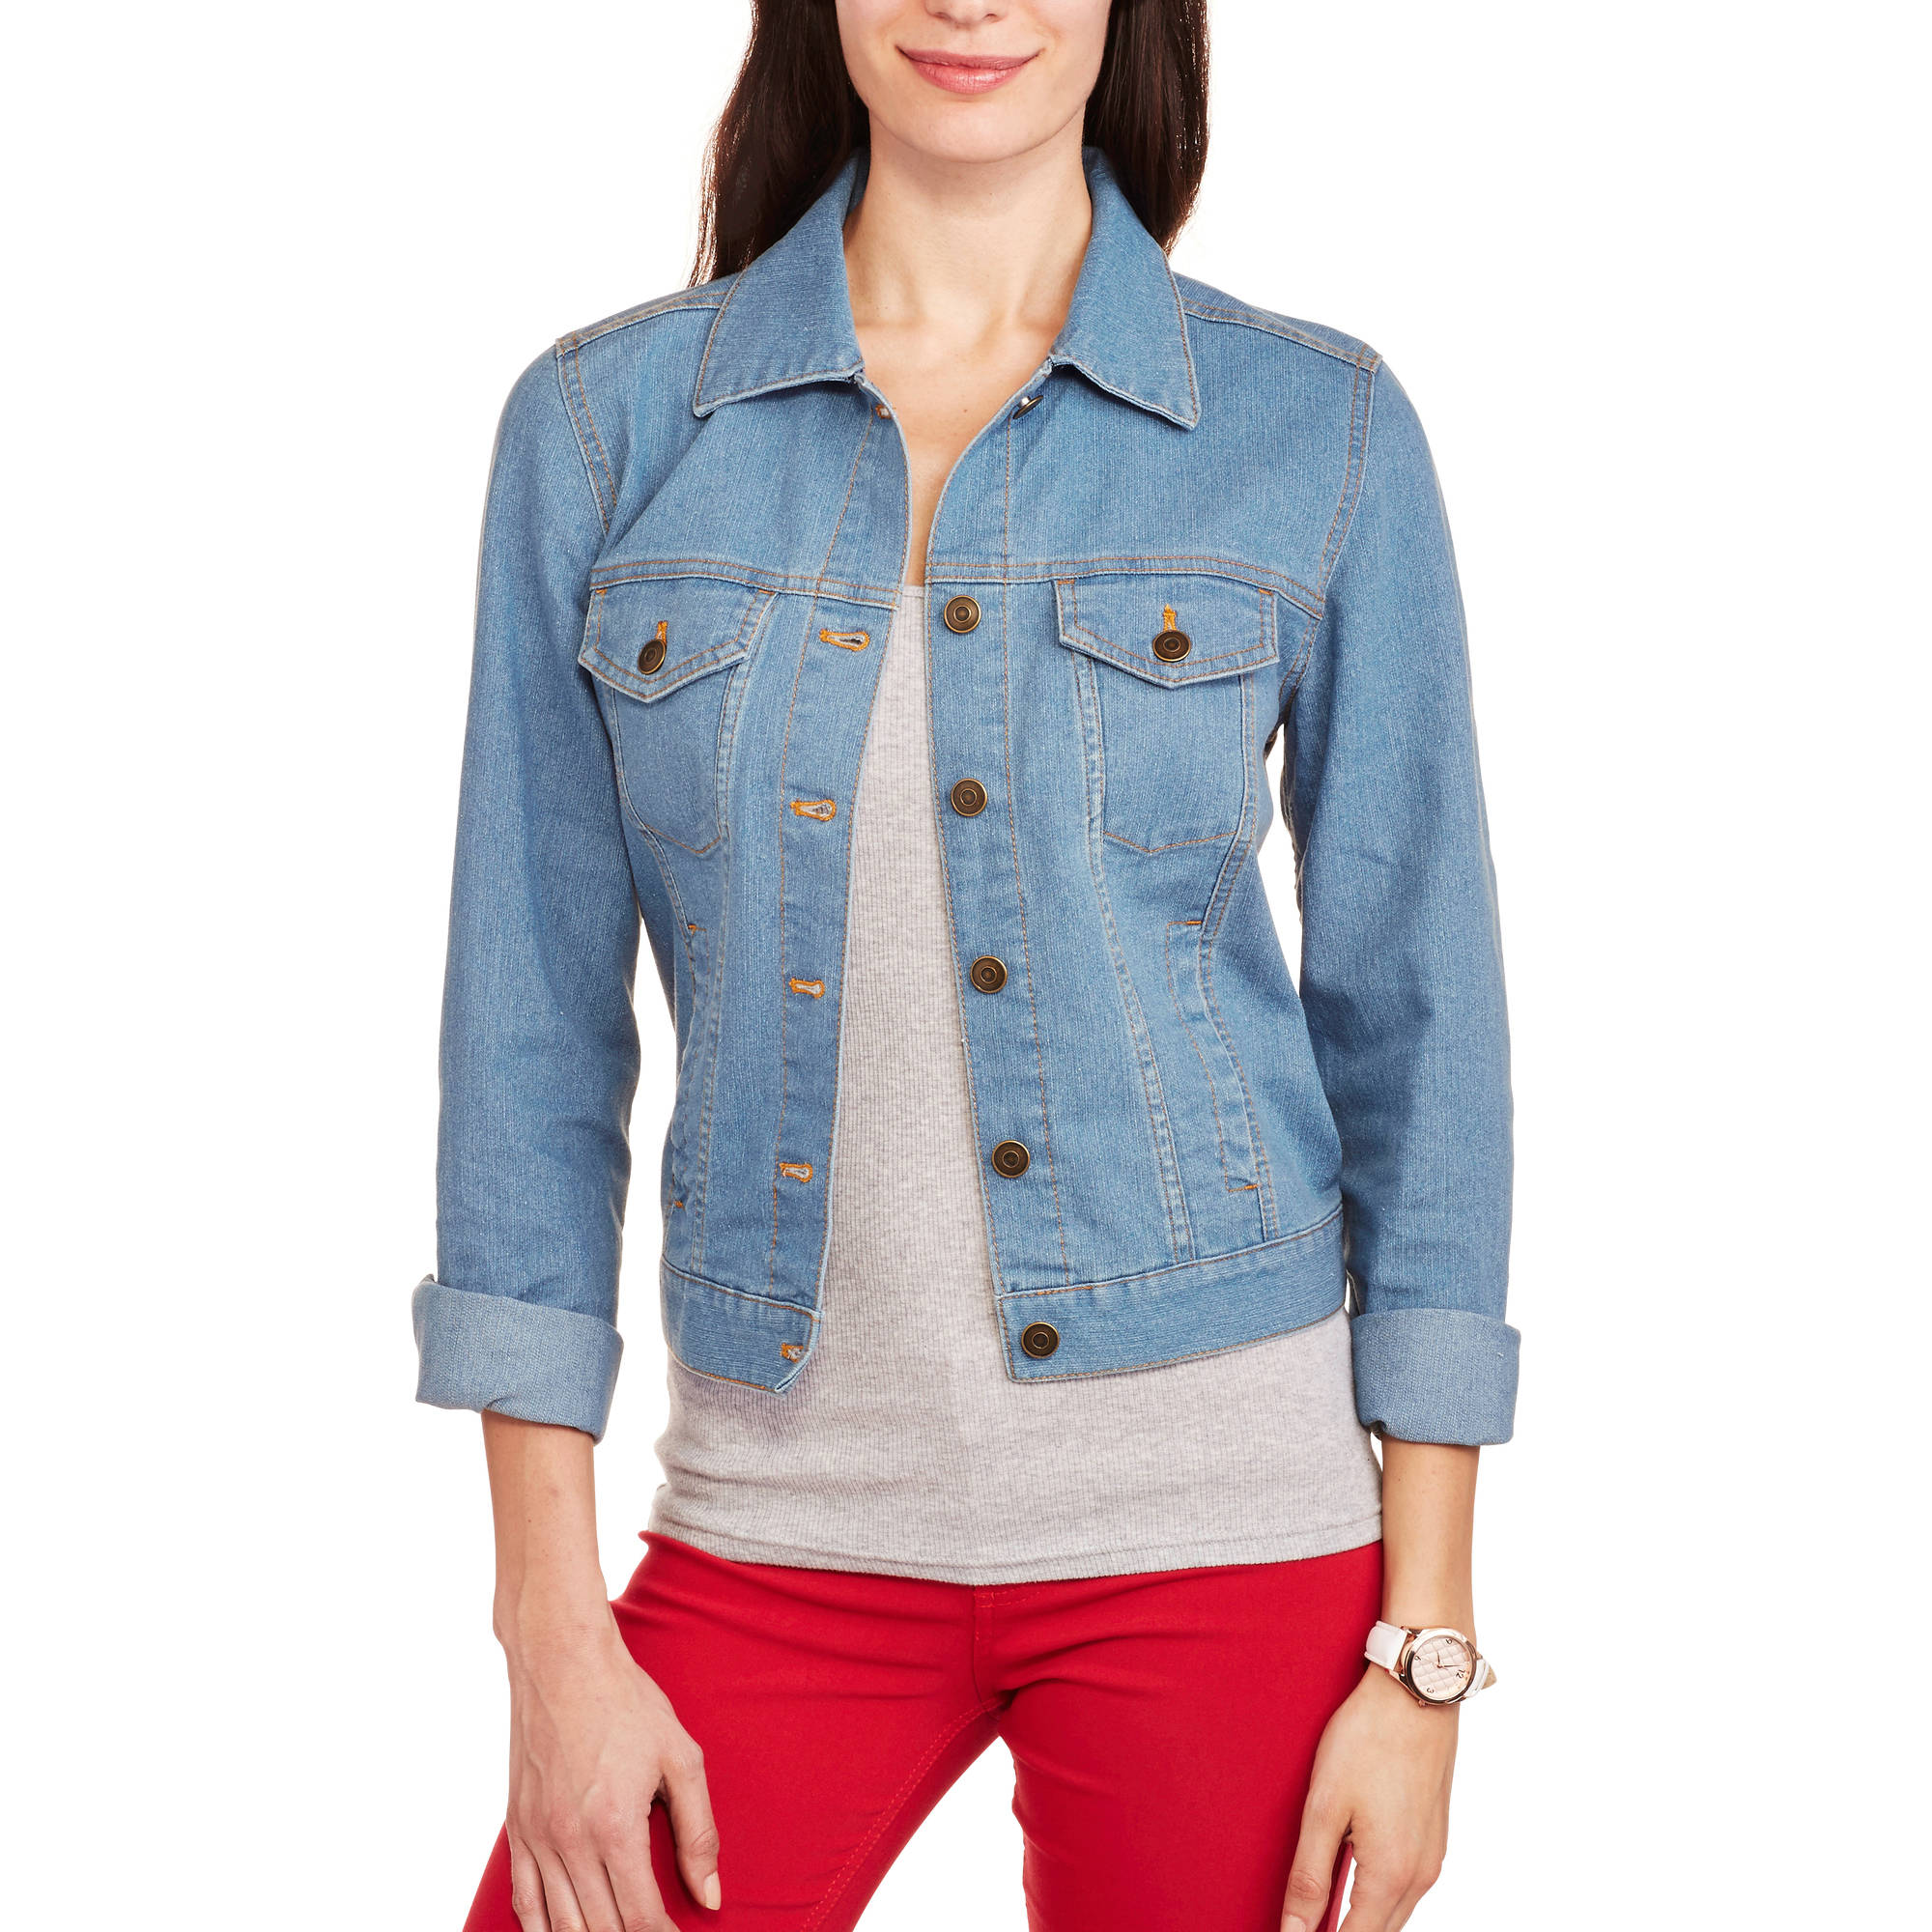 Faded Glory Women's Super Stretch Denim Jacket with Front Pockets